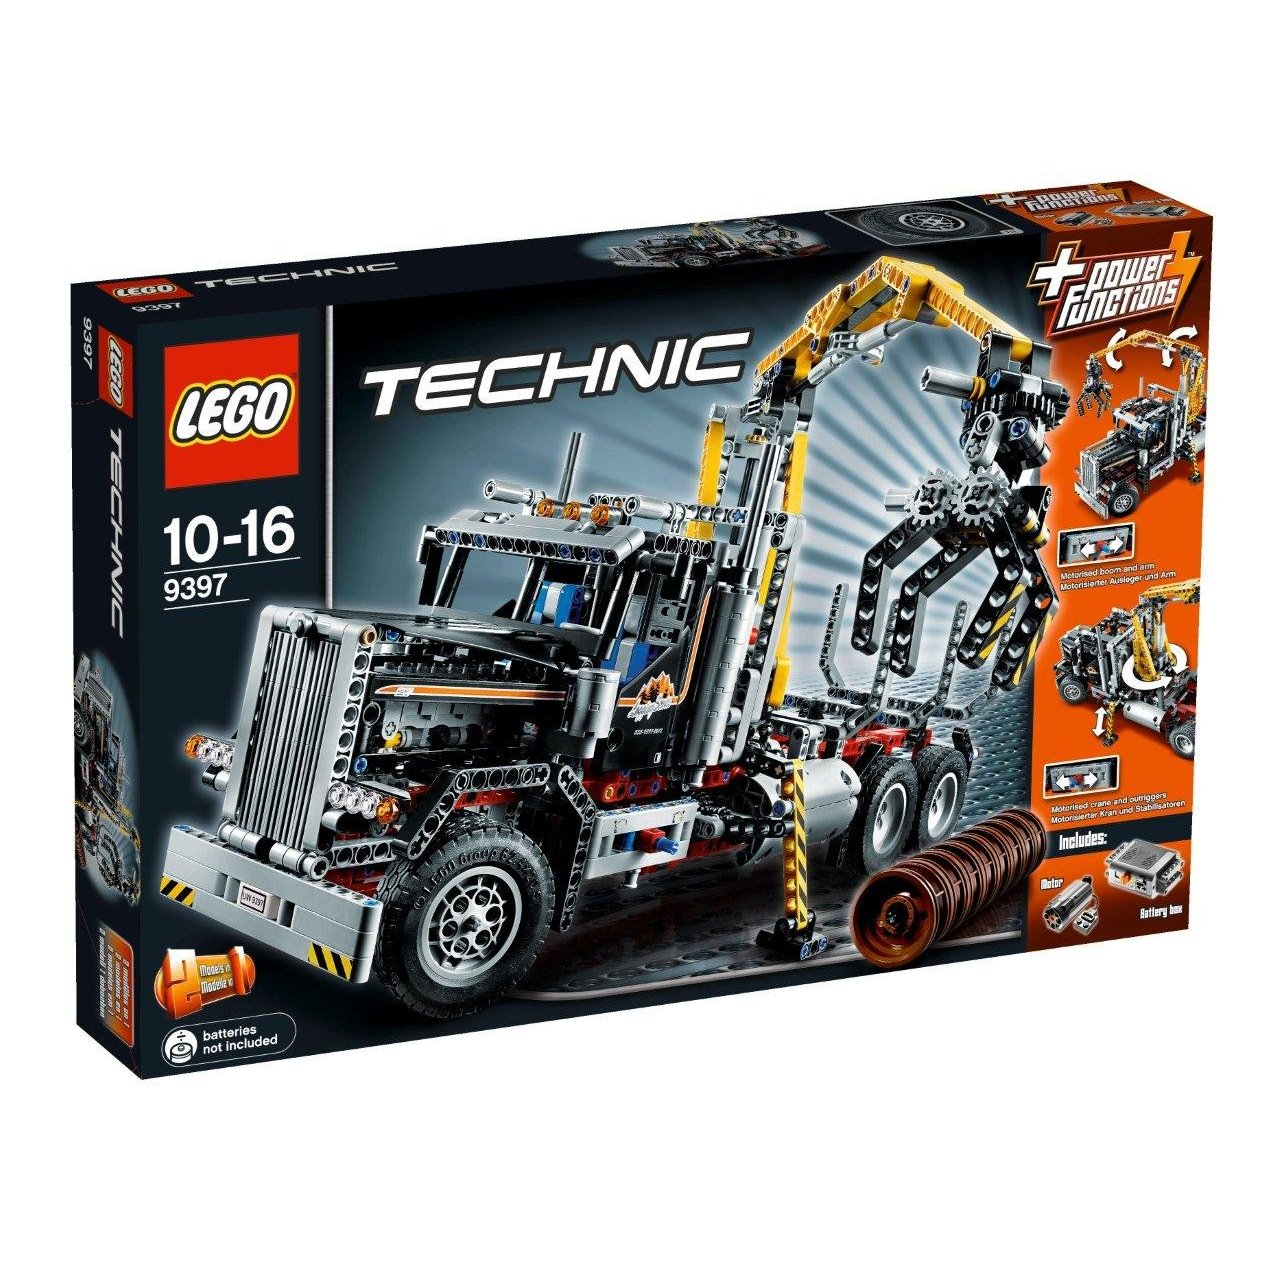 Ultrajeux technic 9397 le camion forestier lego - Jeux de construction lego technic ...